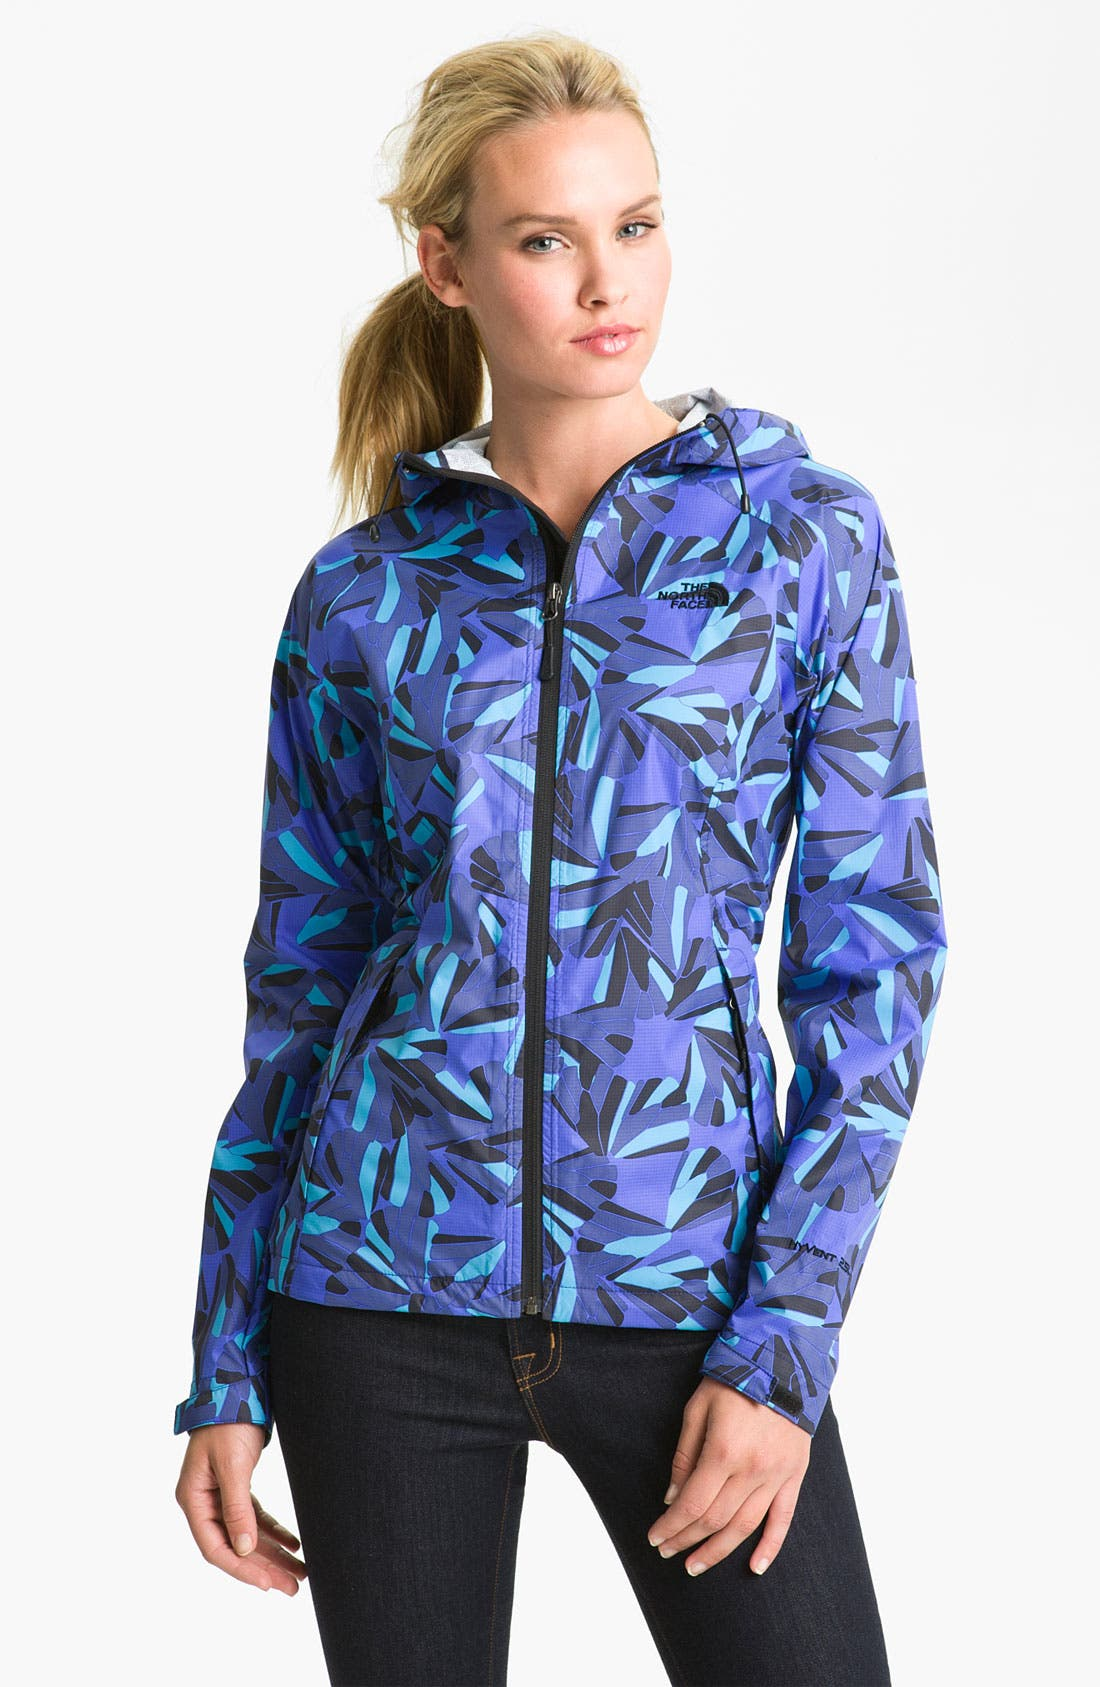 Alternate Image 1 Selected - The North Face Jacket & Hue Leggings